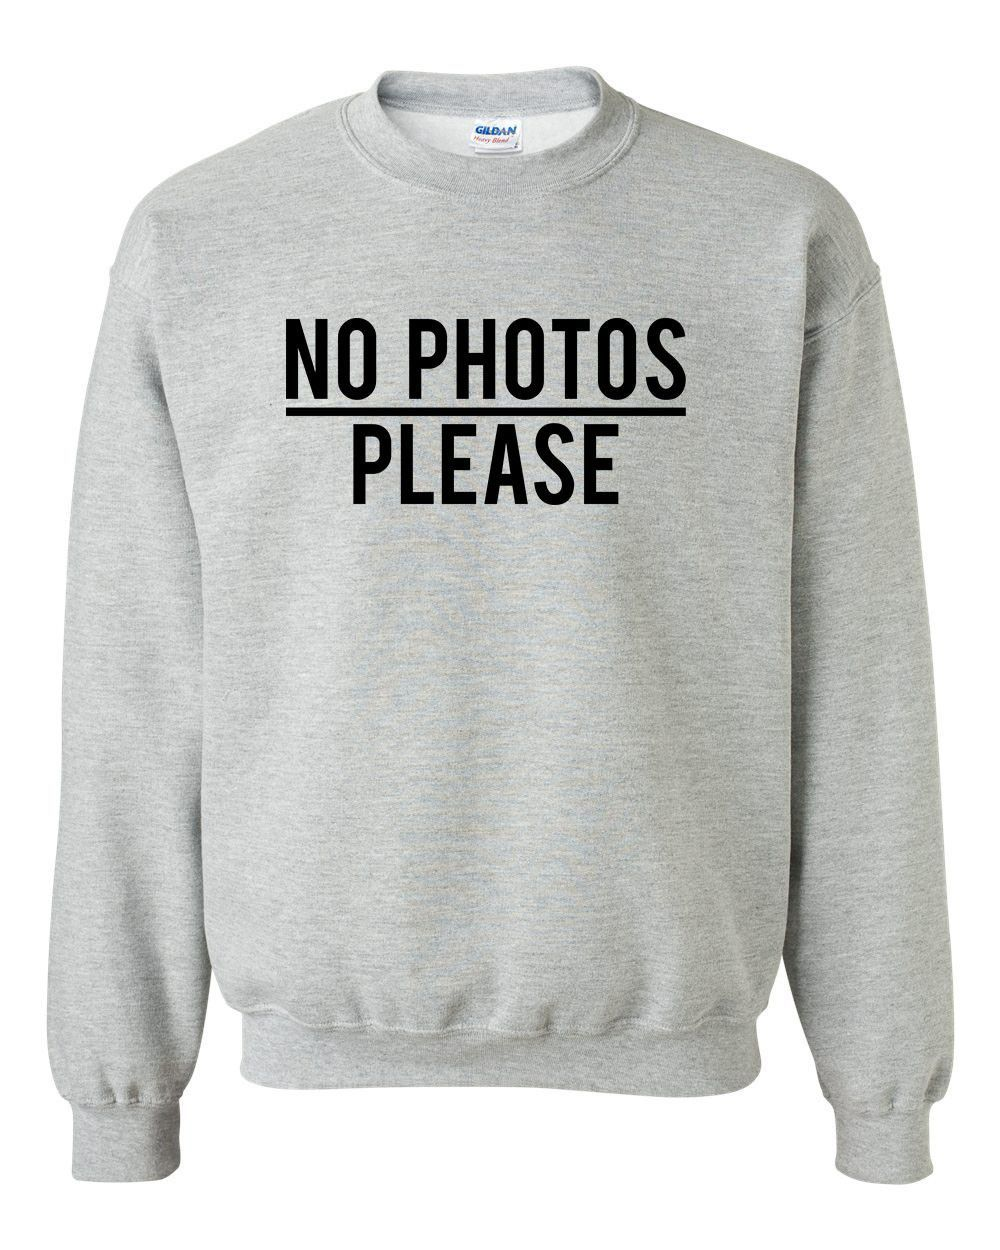 No Photos Please Sweatshirt Cool Funny Humor Sweater Outfit For Teens Sweatshirts Outfits For Teens Funny Sweaters [ 1250 x 1000 Pixel ]